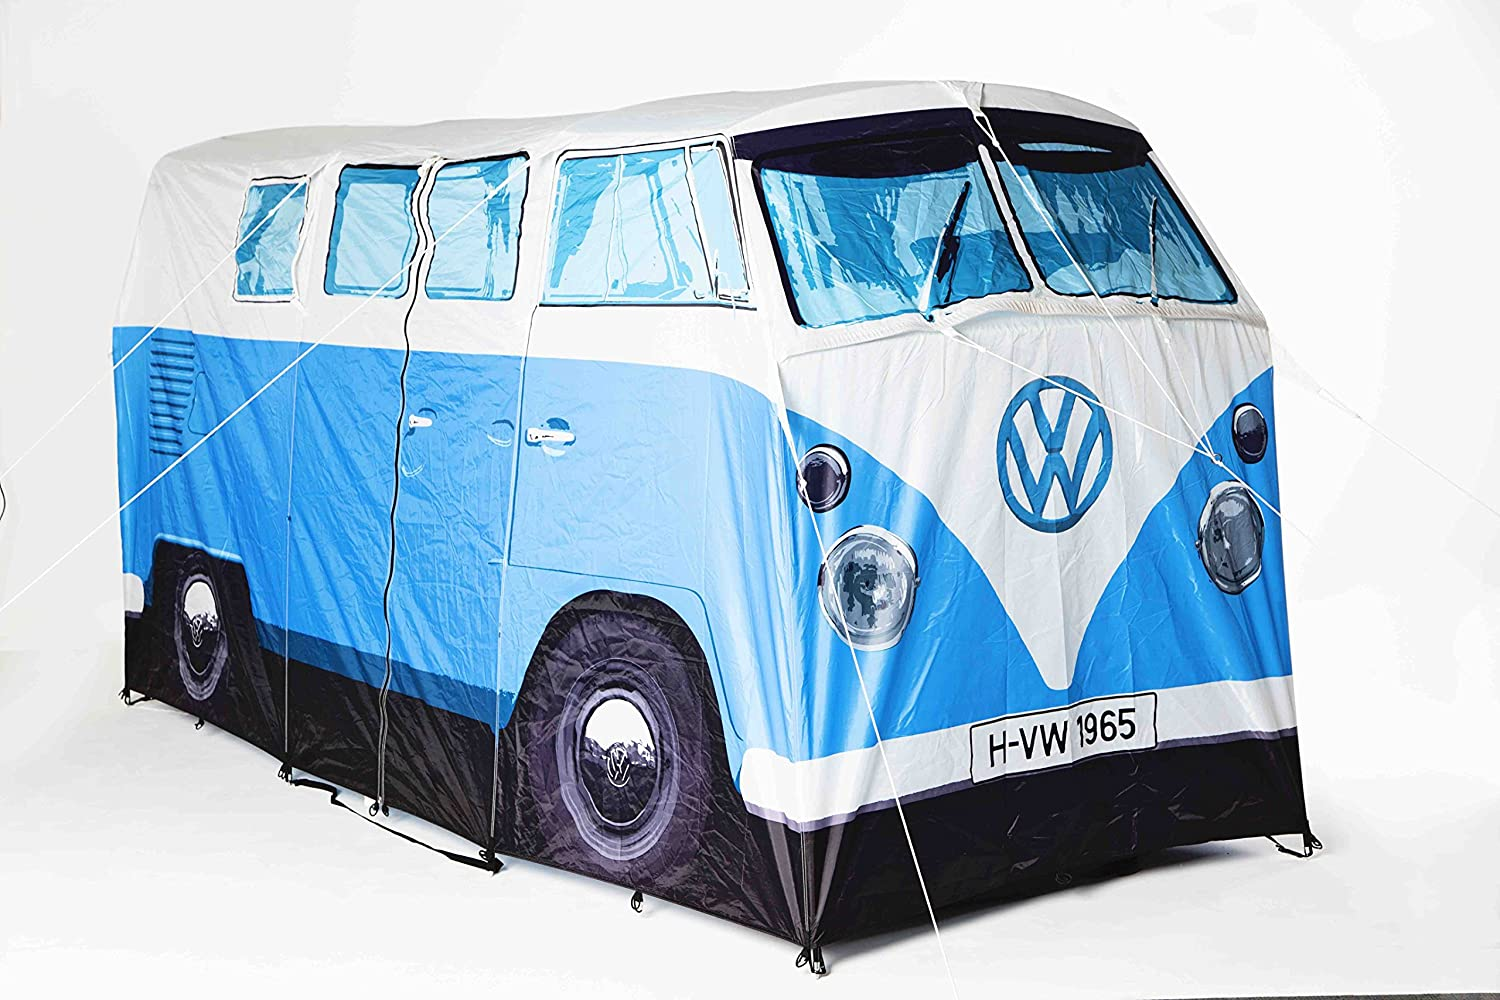 zelt vw bus vw bus zelt vw bus zelt gadgets und geschenke vw bus zelt online kaufen online. Black Bedroom Furniture Sets. Home Design Ideas